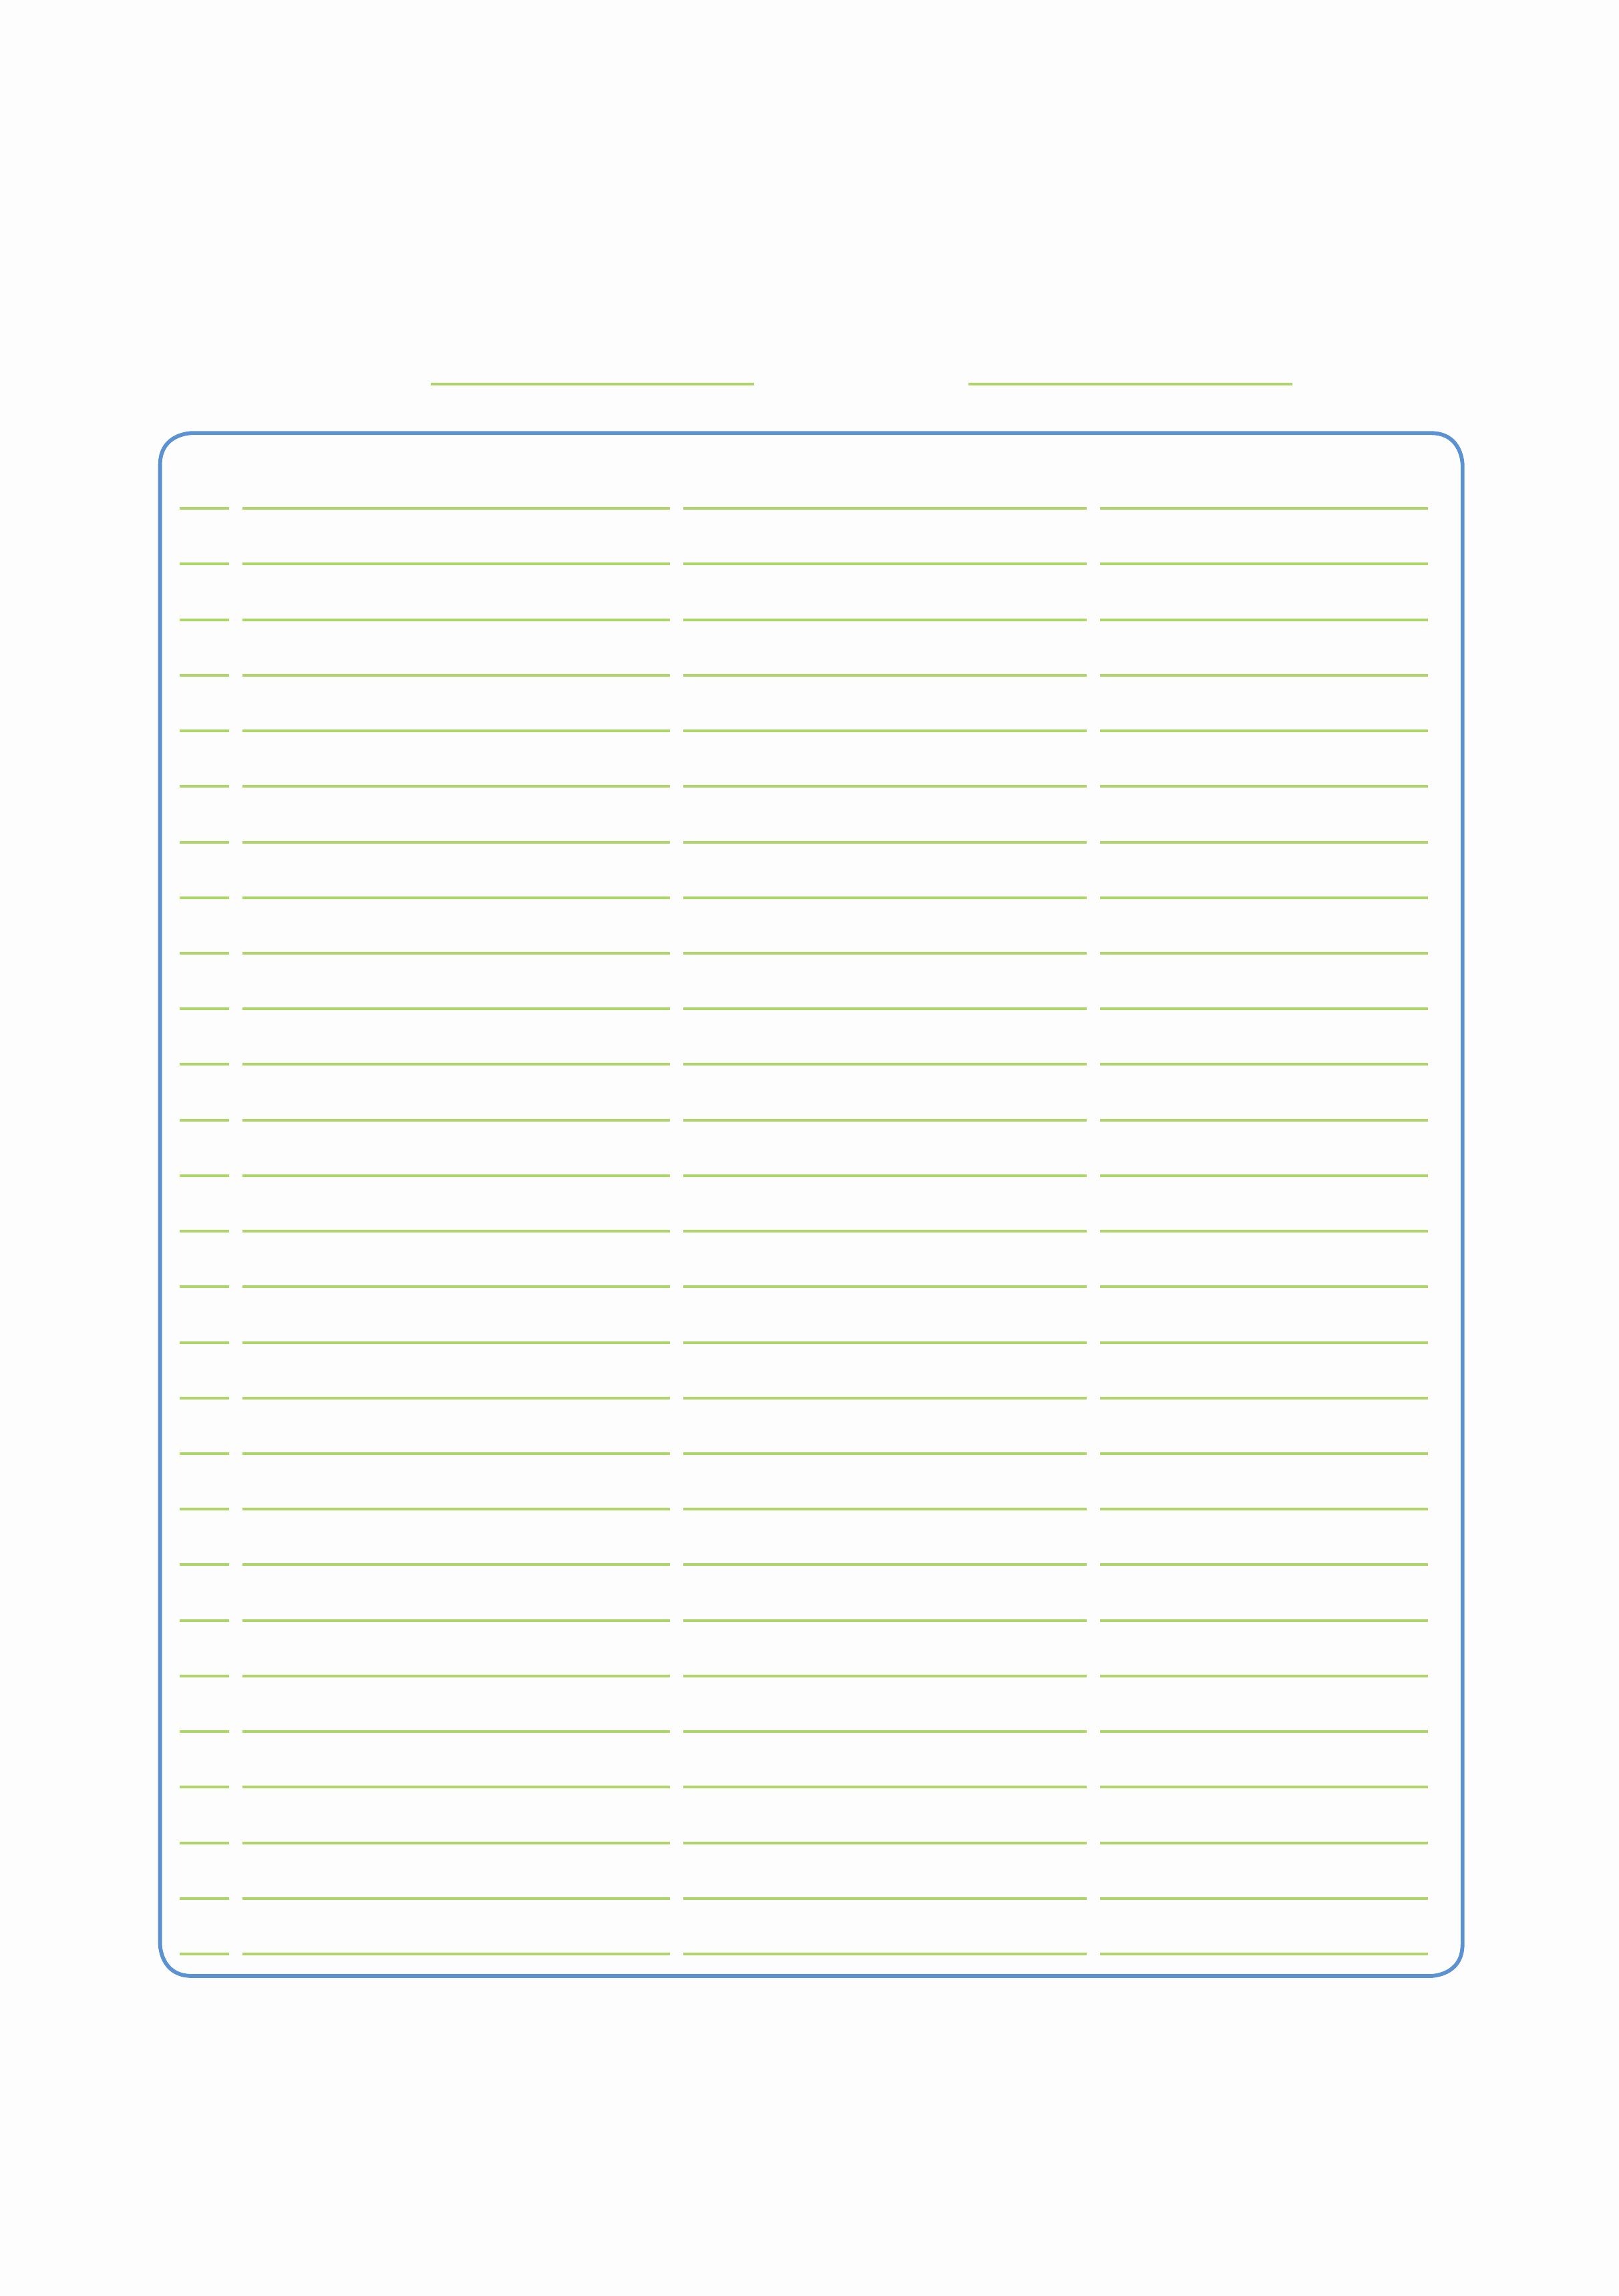 Name Email Sign Up Sheet Inspirational Sign Up Sheet Sample Free Bunch Ideas Name and Email